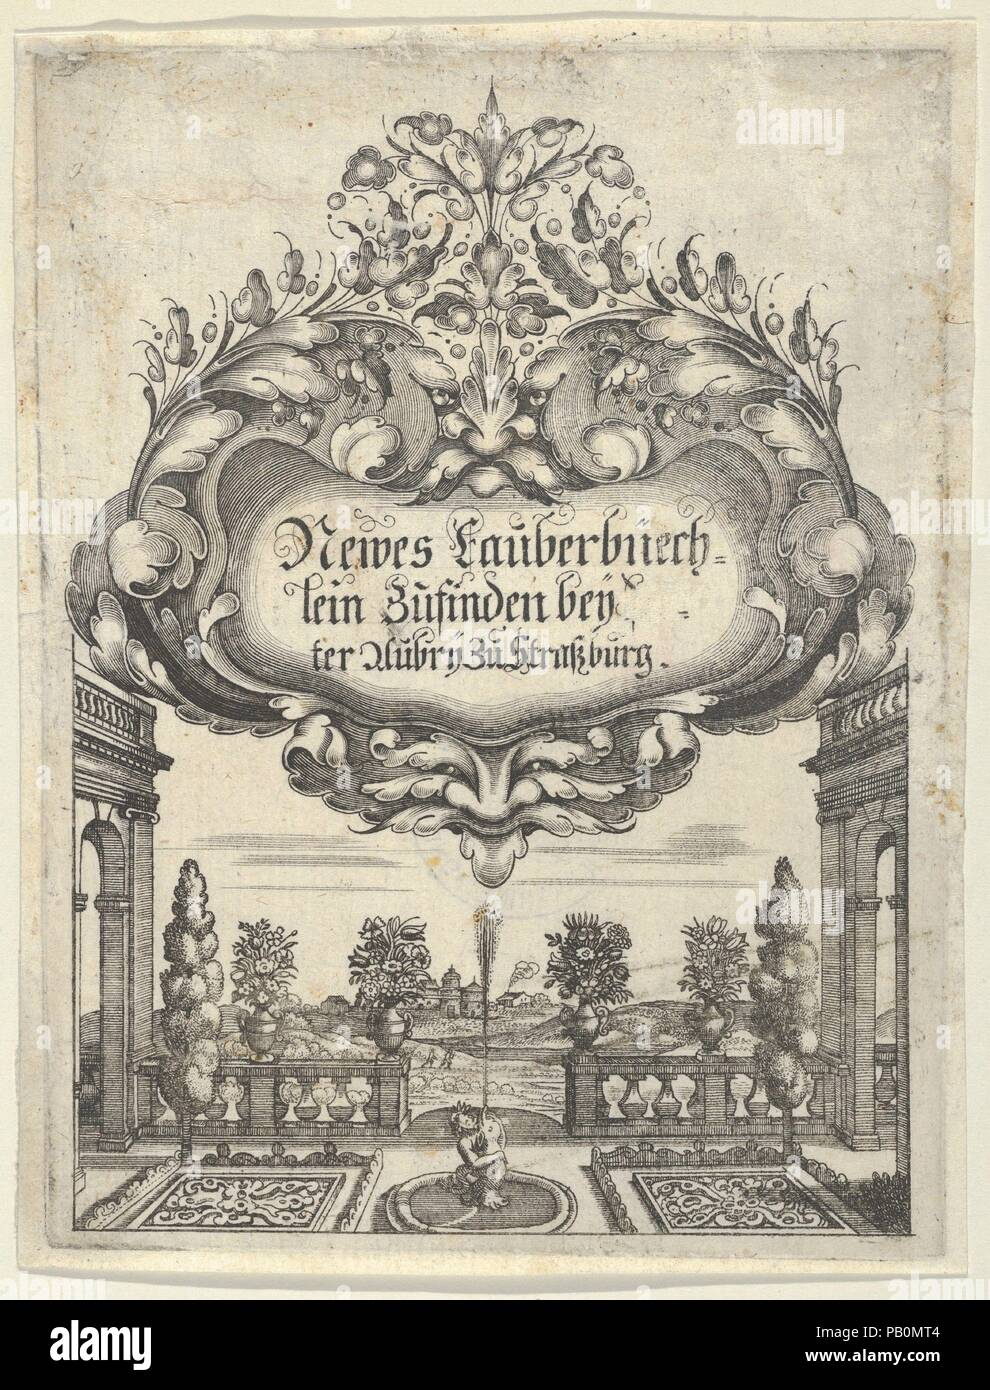 Title Page From Newes Lauberbuechlein Artist Peter Aubry